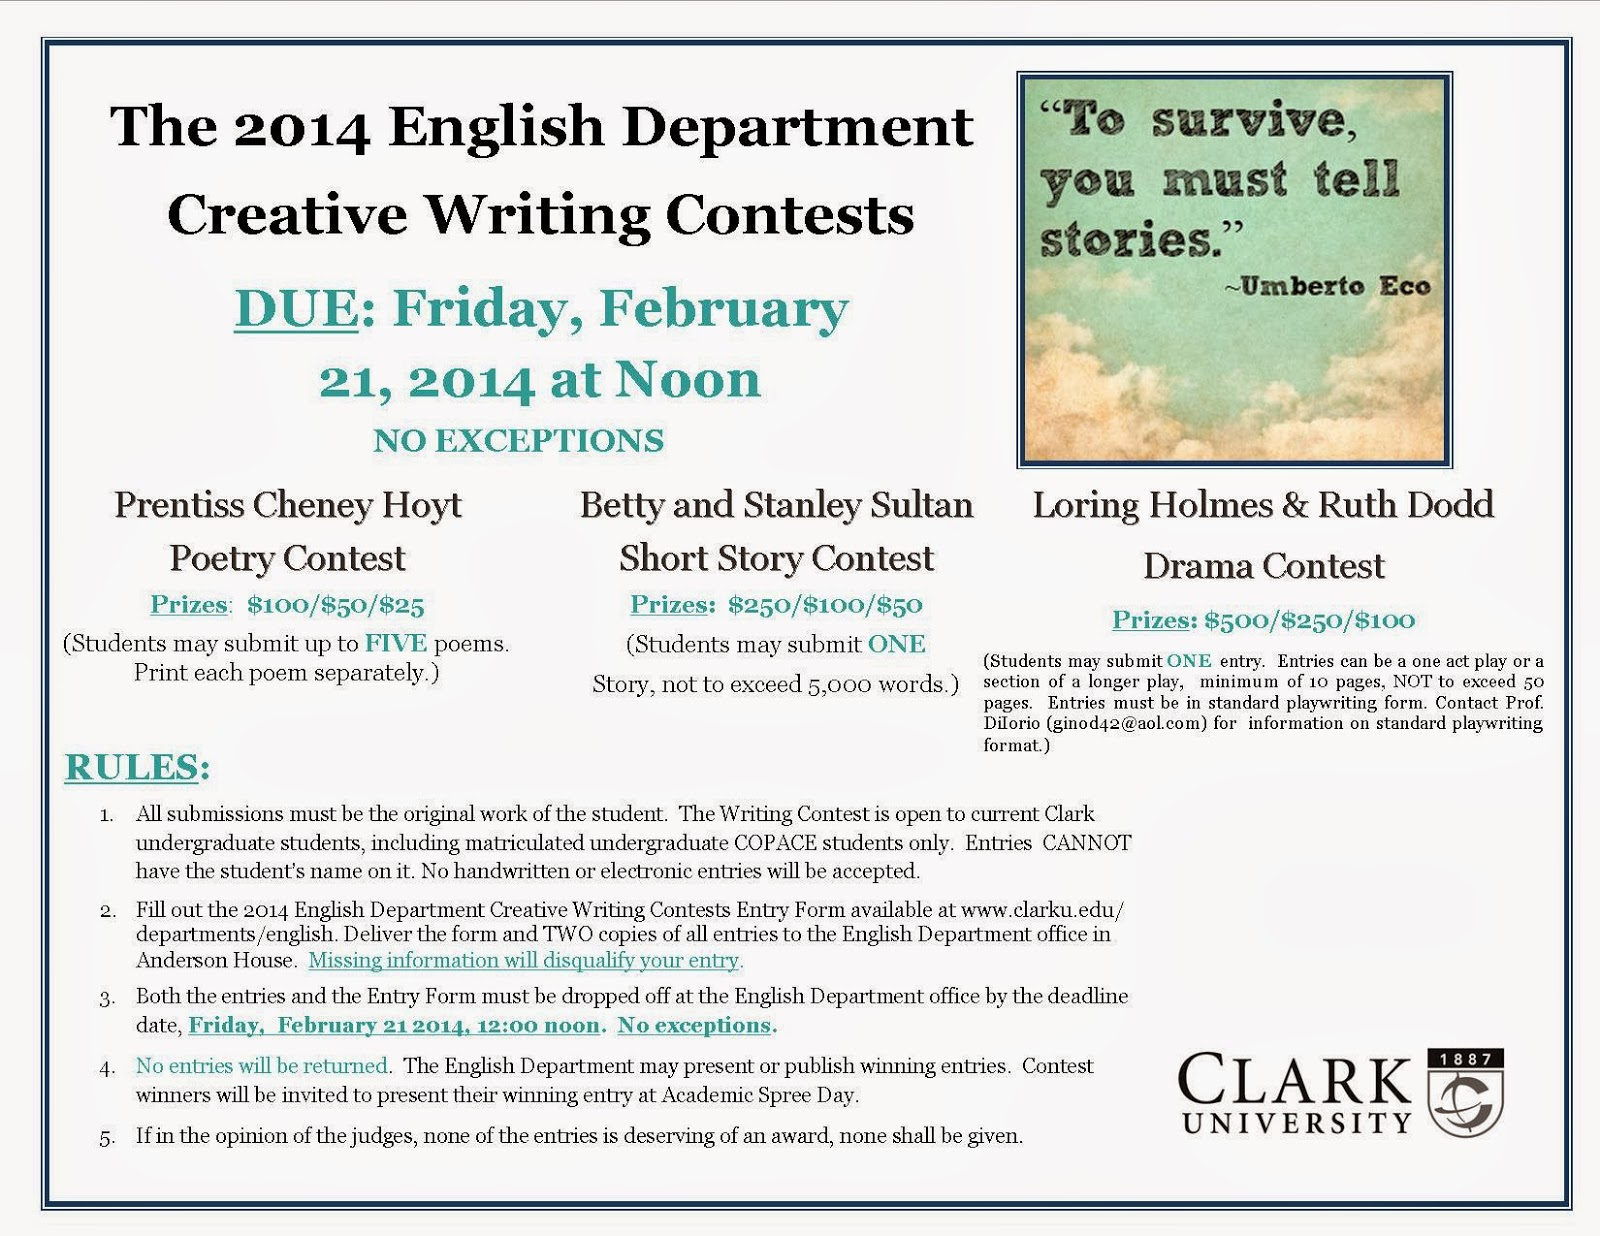 001 Essay Examplecreativewritingcontestposterfinal Contests Imposing 2014 Maryknoll Contest Winners Full